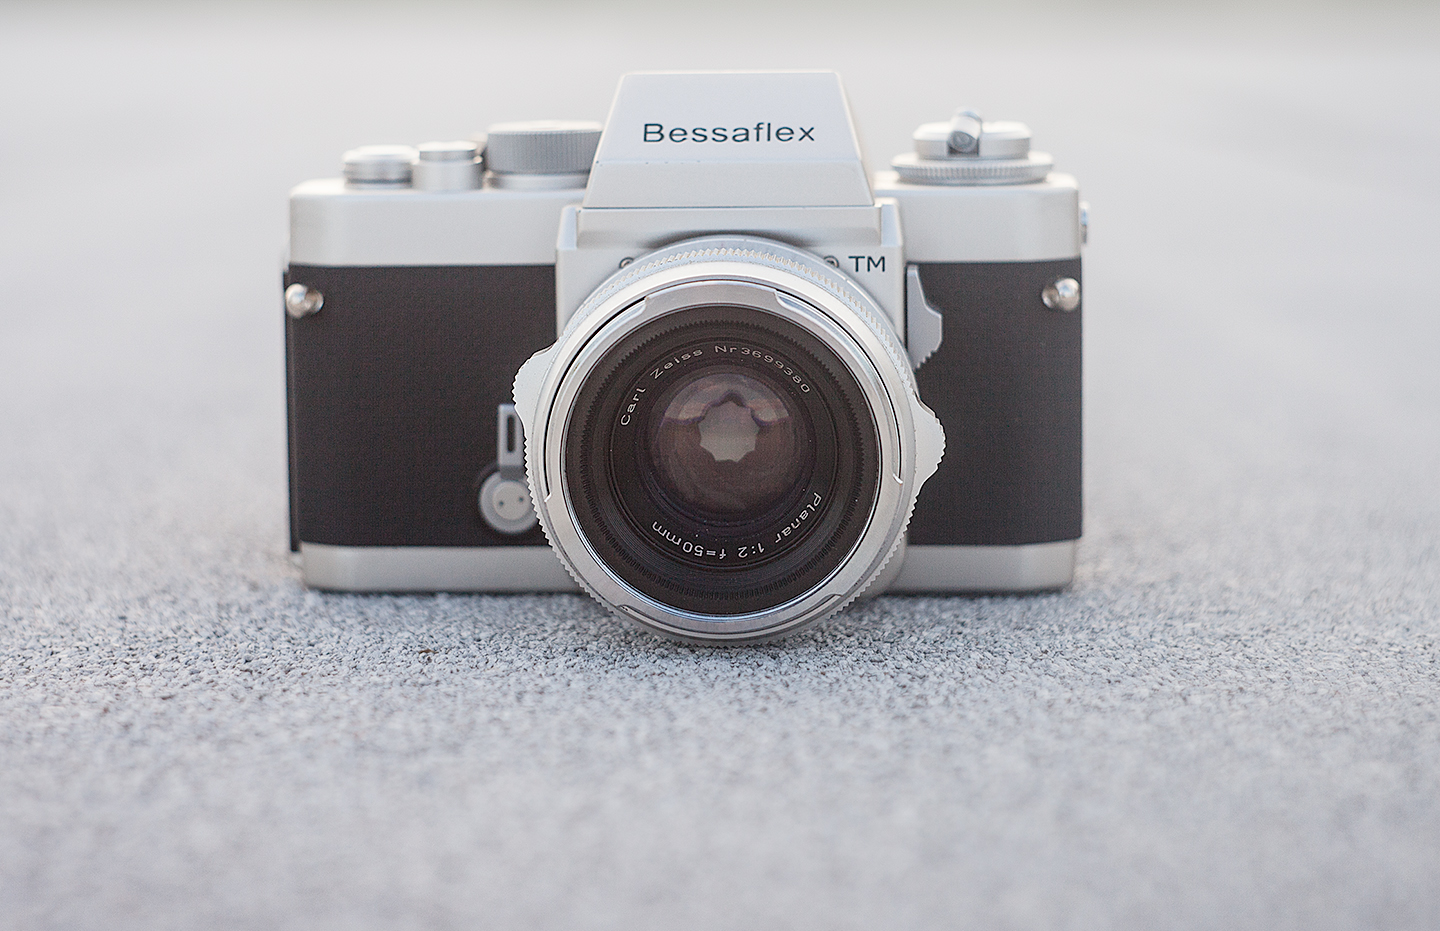 The Cosina Voigtlander Bessaflex TM in Silver